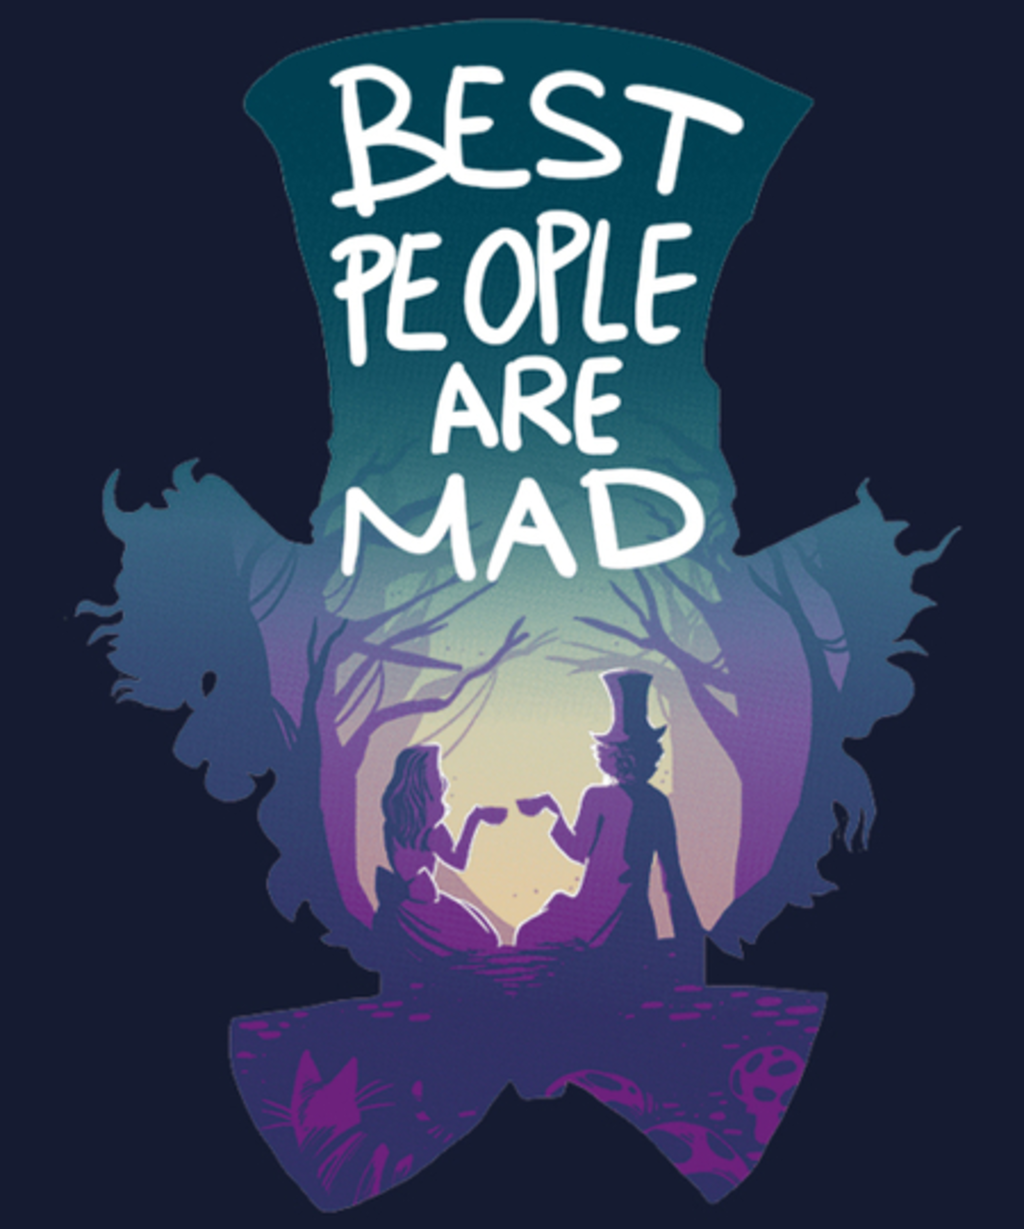 Qwertee: Best people are mad